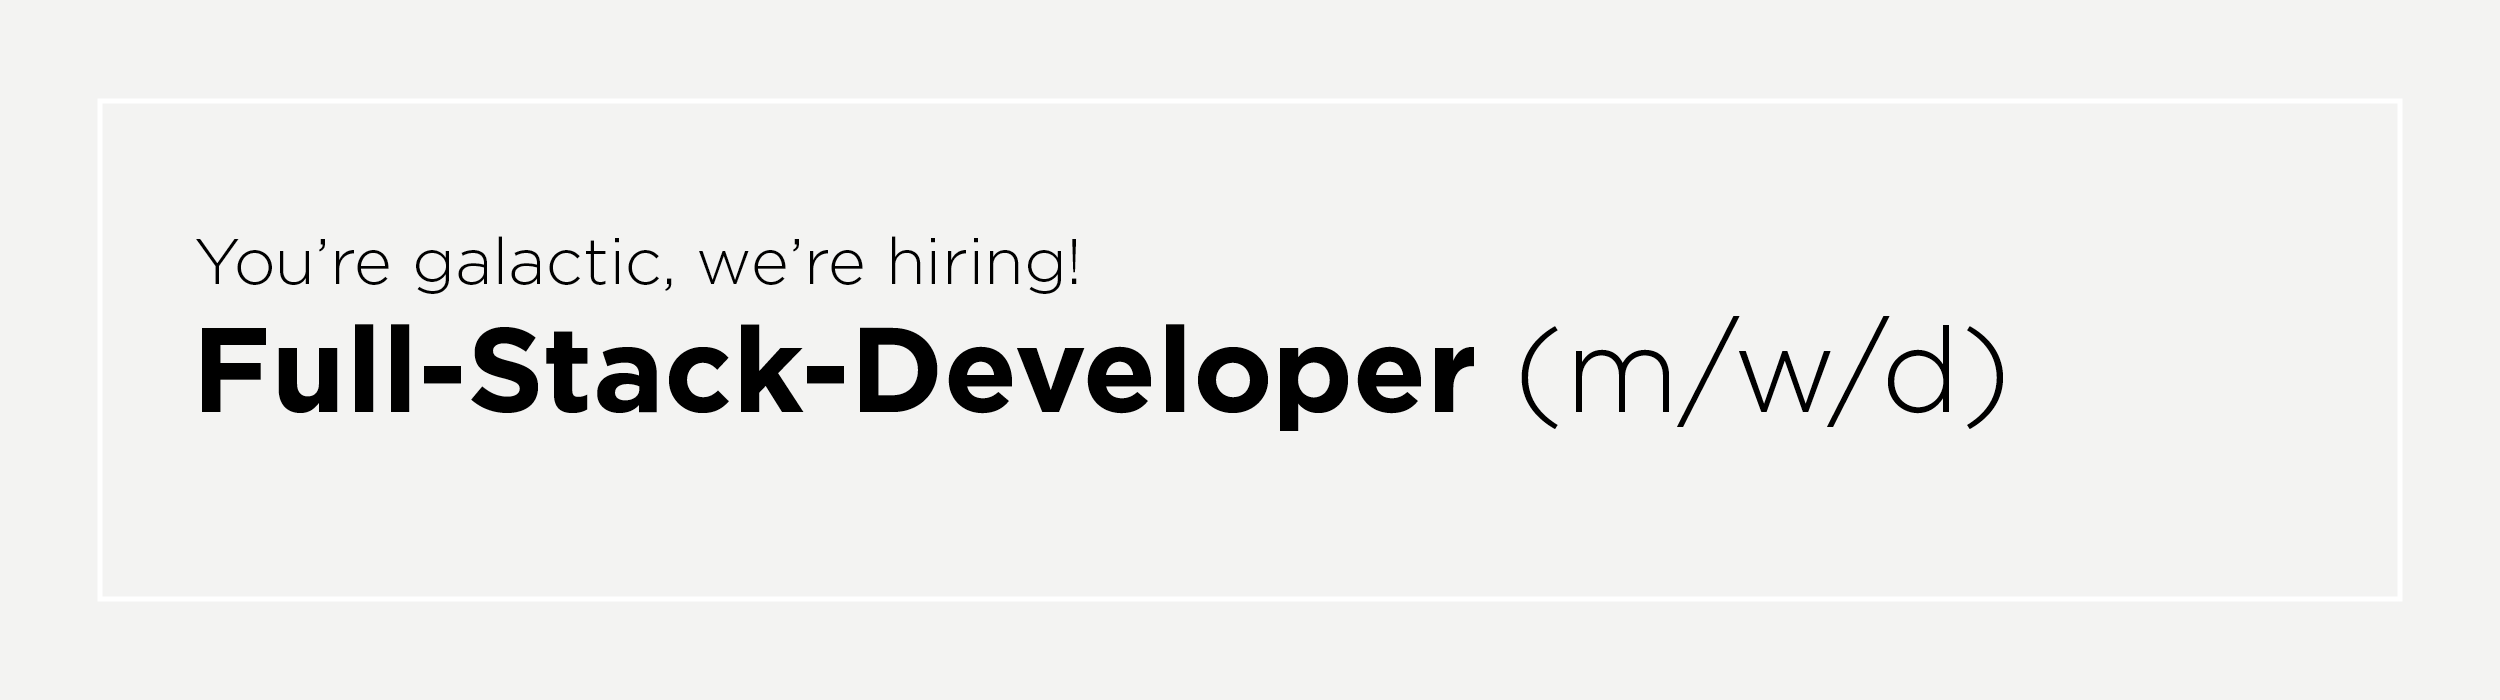 full-stack-developer (m/w/d)